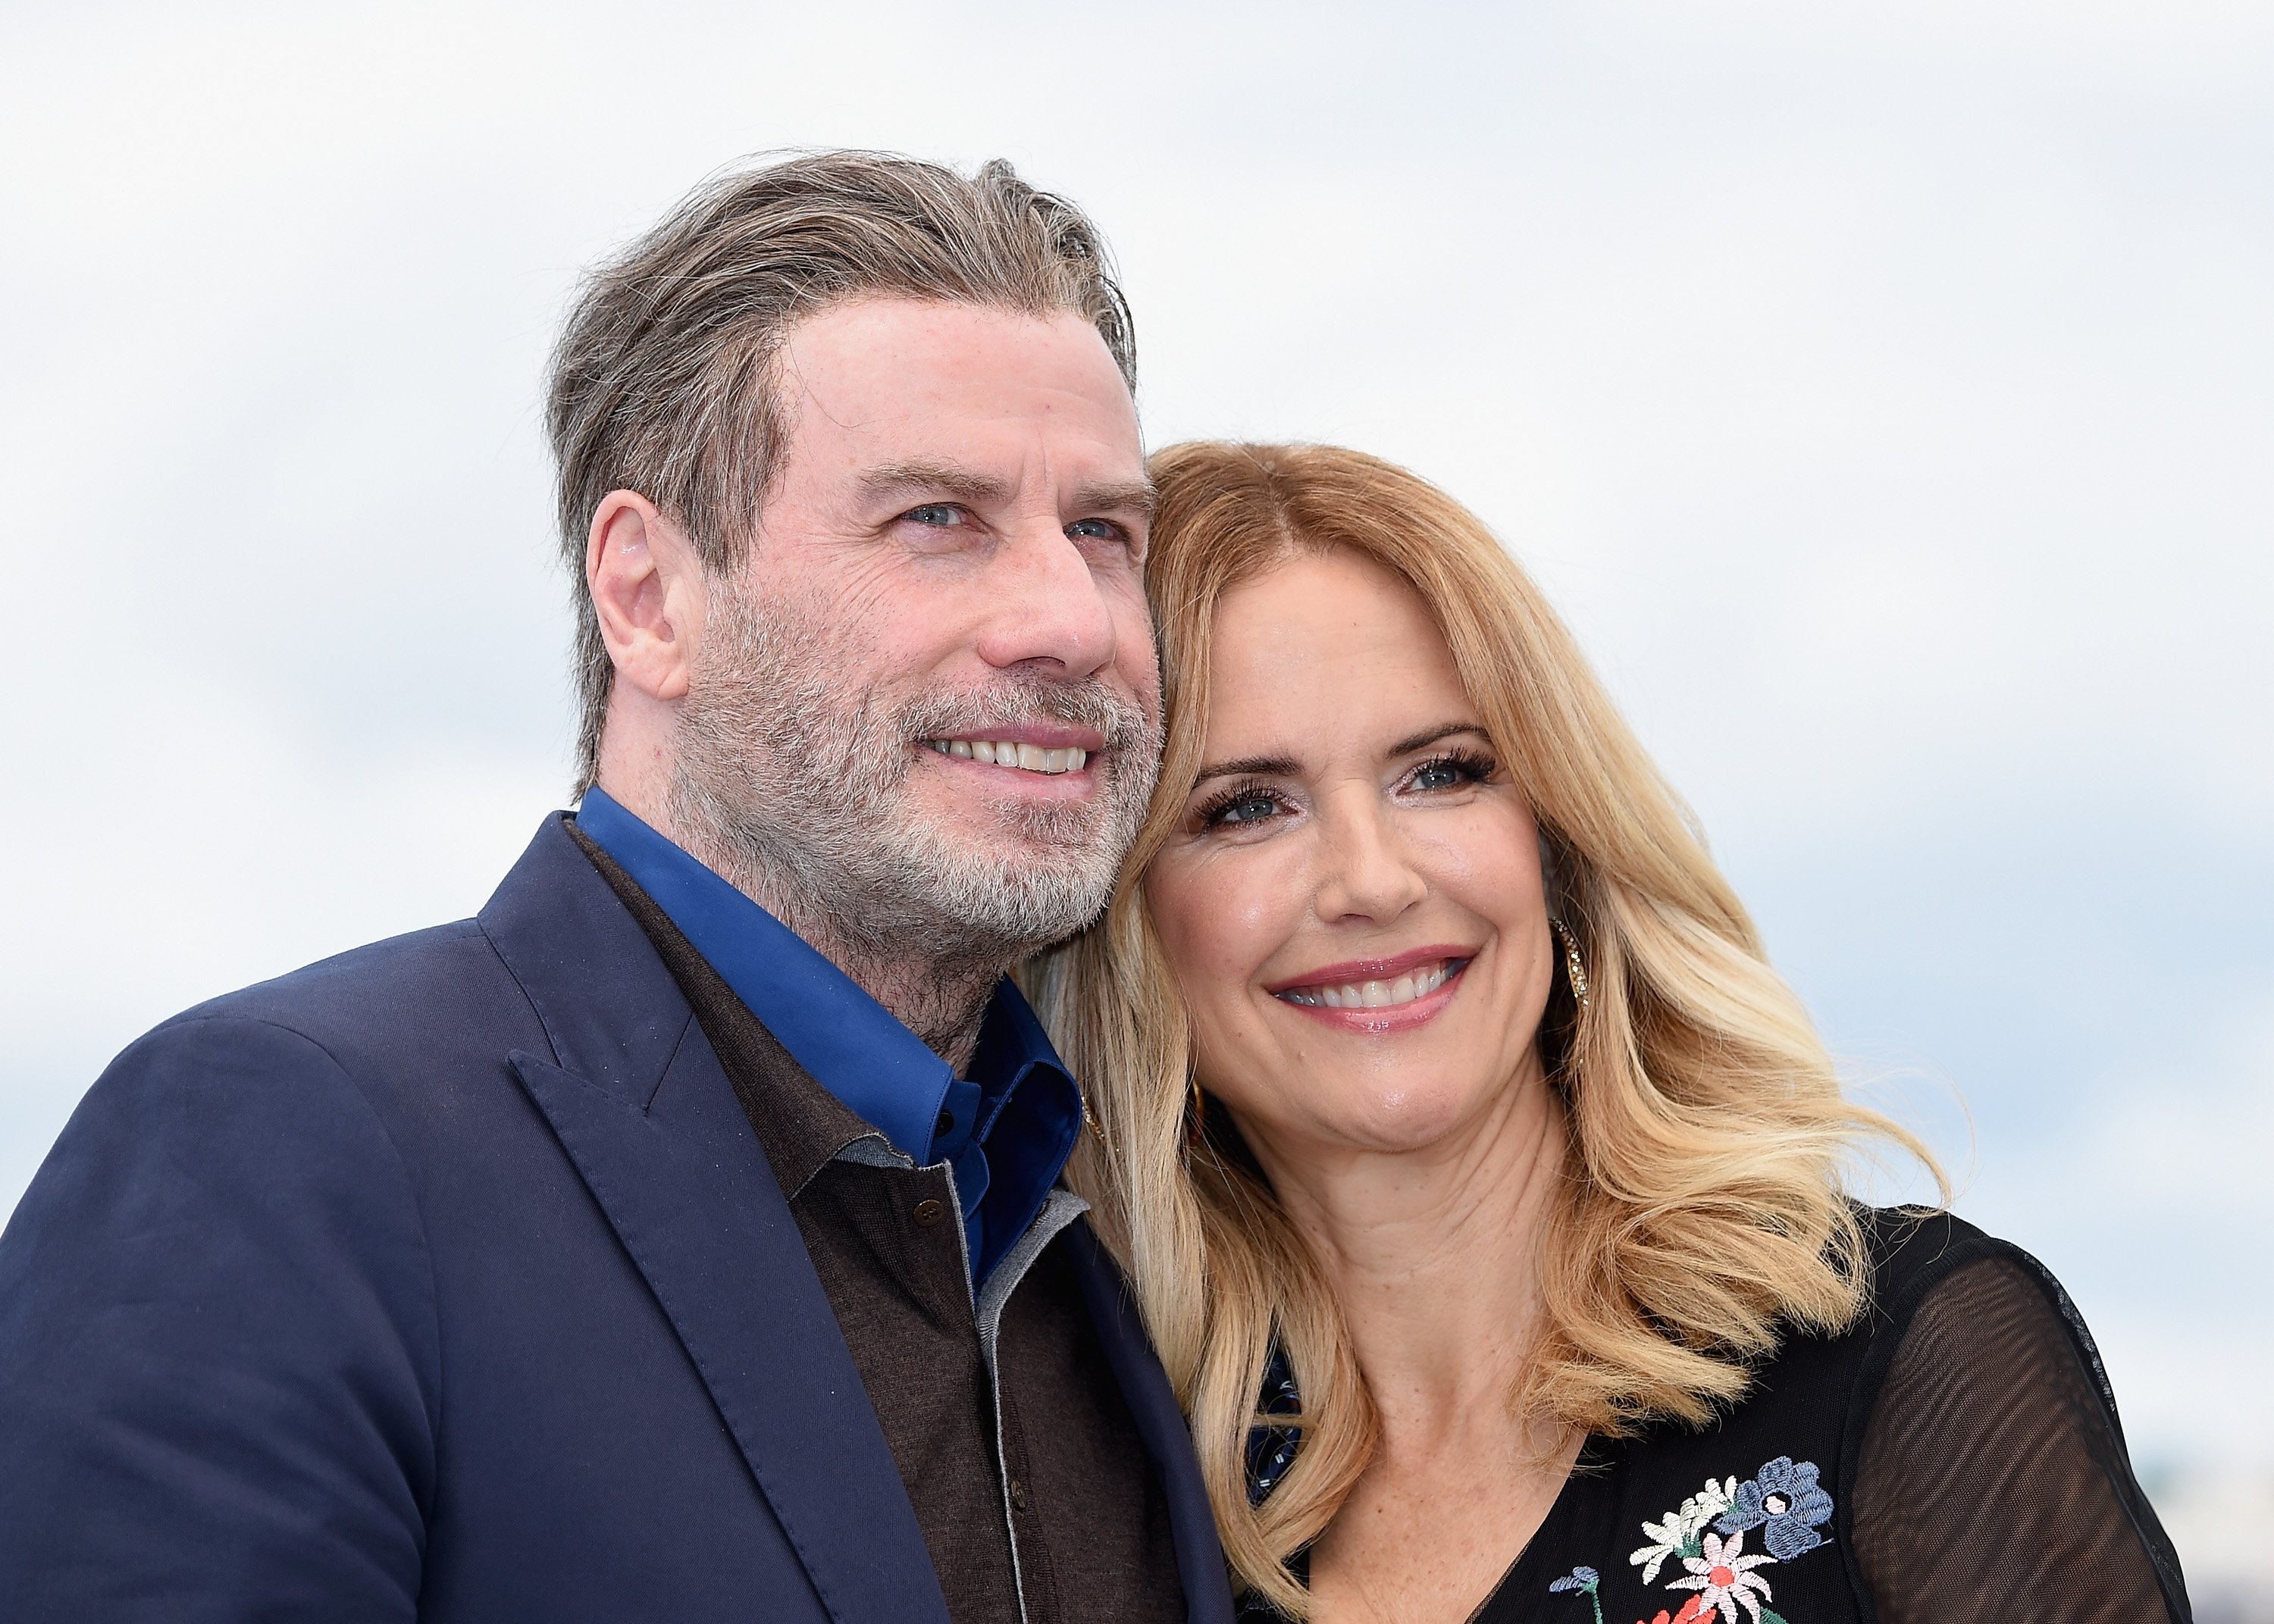 Image Source: Getty Images/John and Kelly at Cannes Film Festival